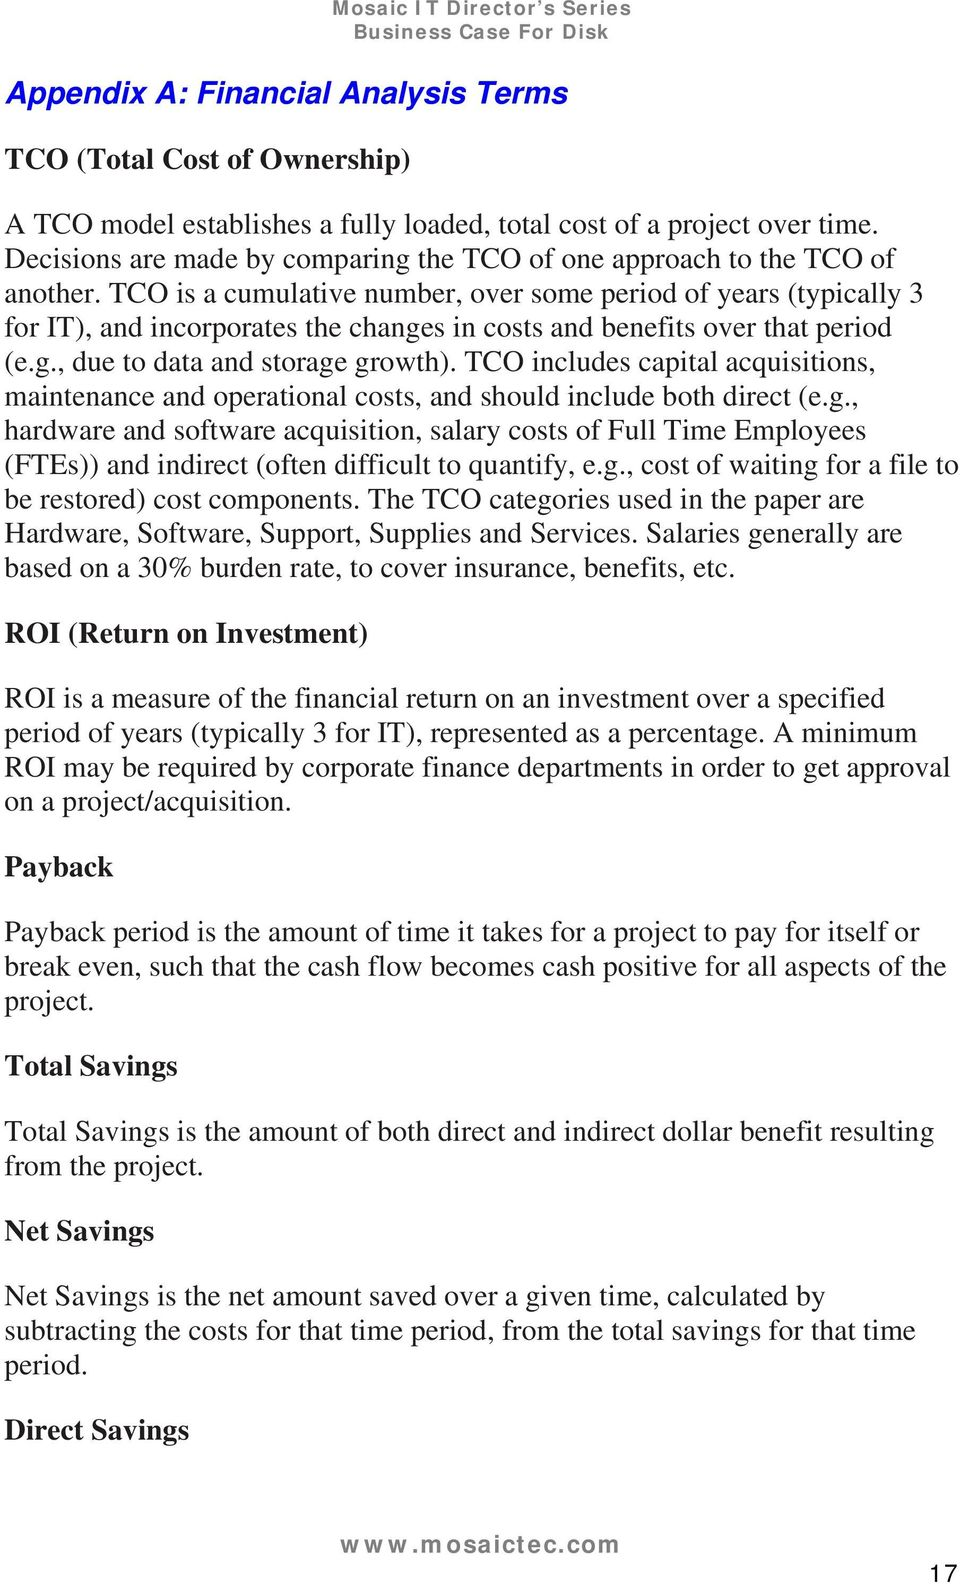 TCO is a cumulative number, over some period of years (typically 3 for IT), and incorporates the changes in costs and benefits over that period (e.g., due to data and storage growth).